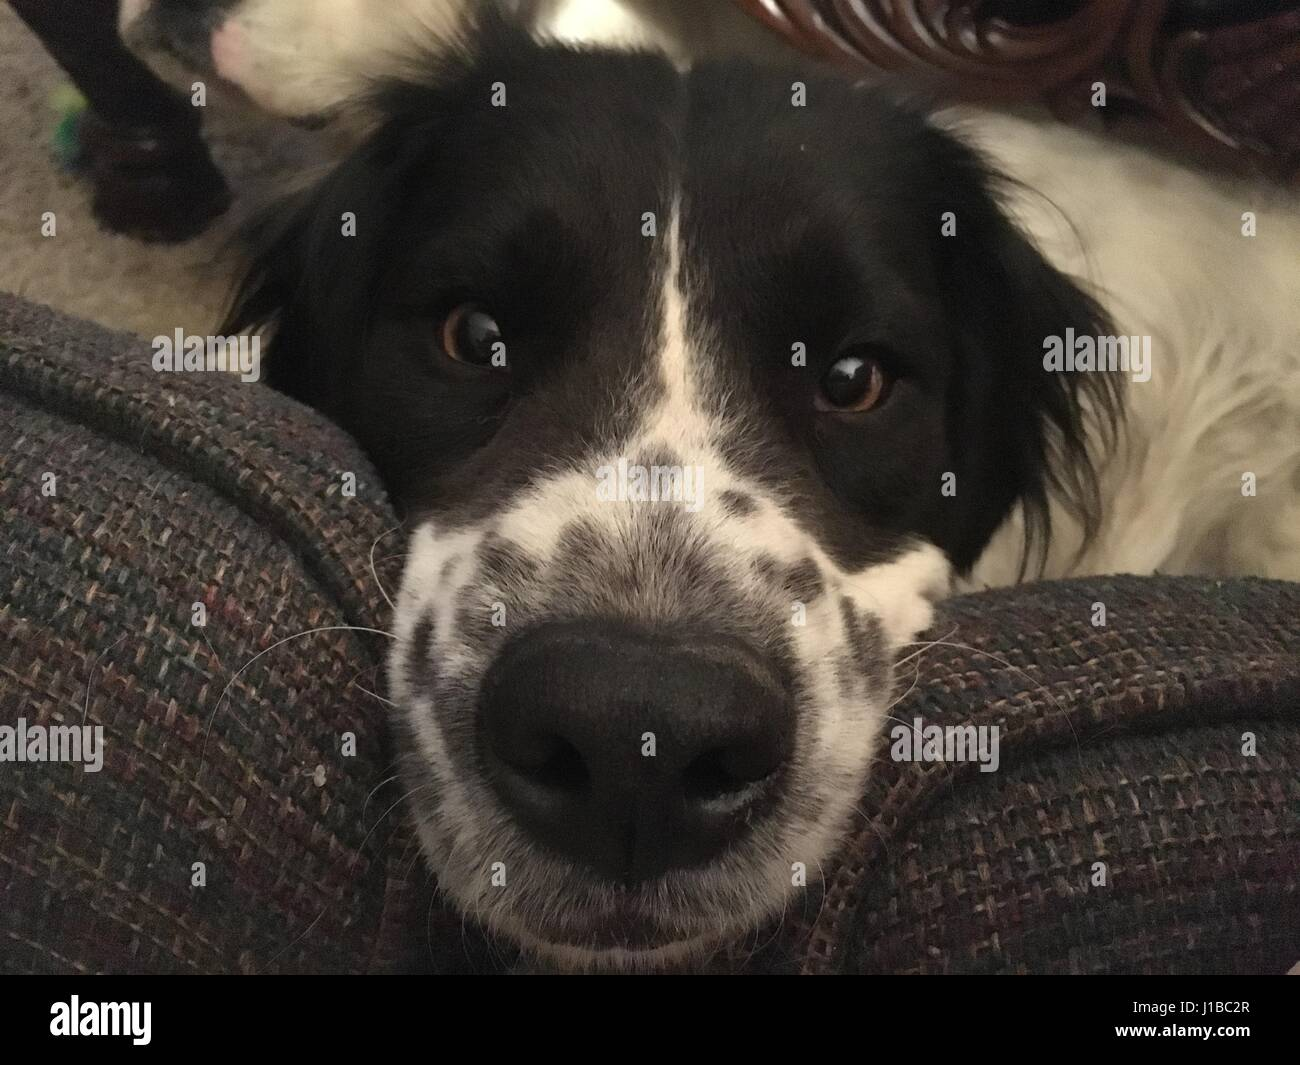 Freckled pup - Stock Image